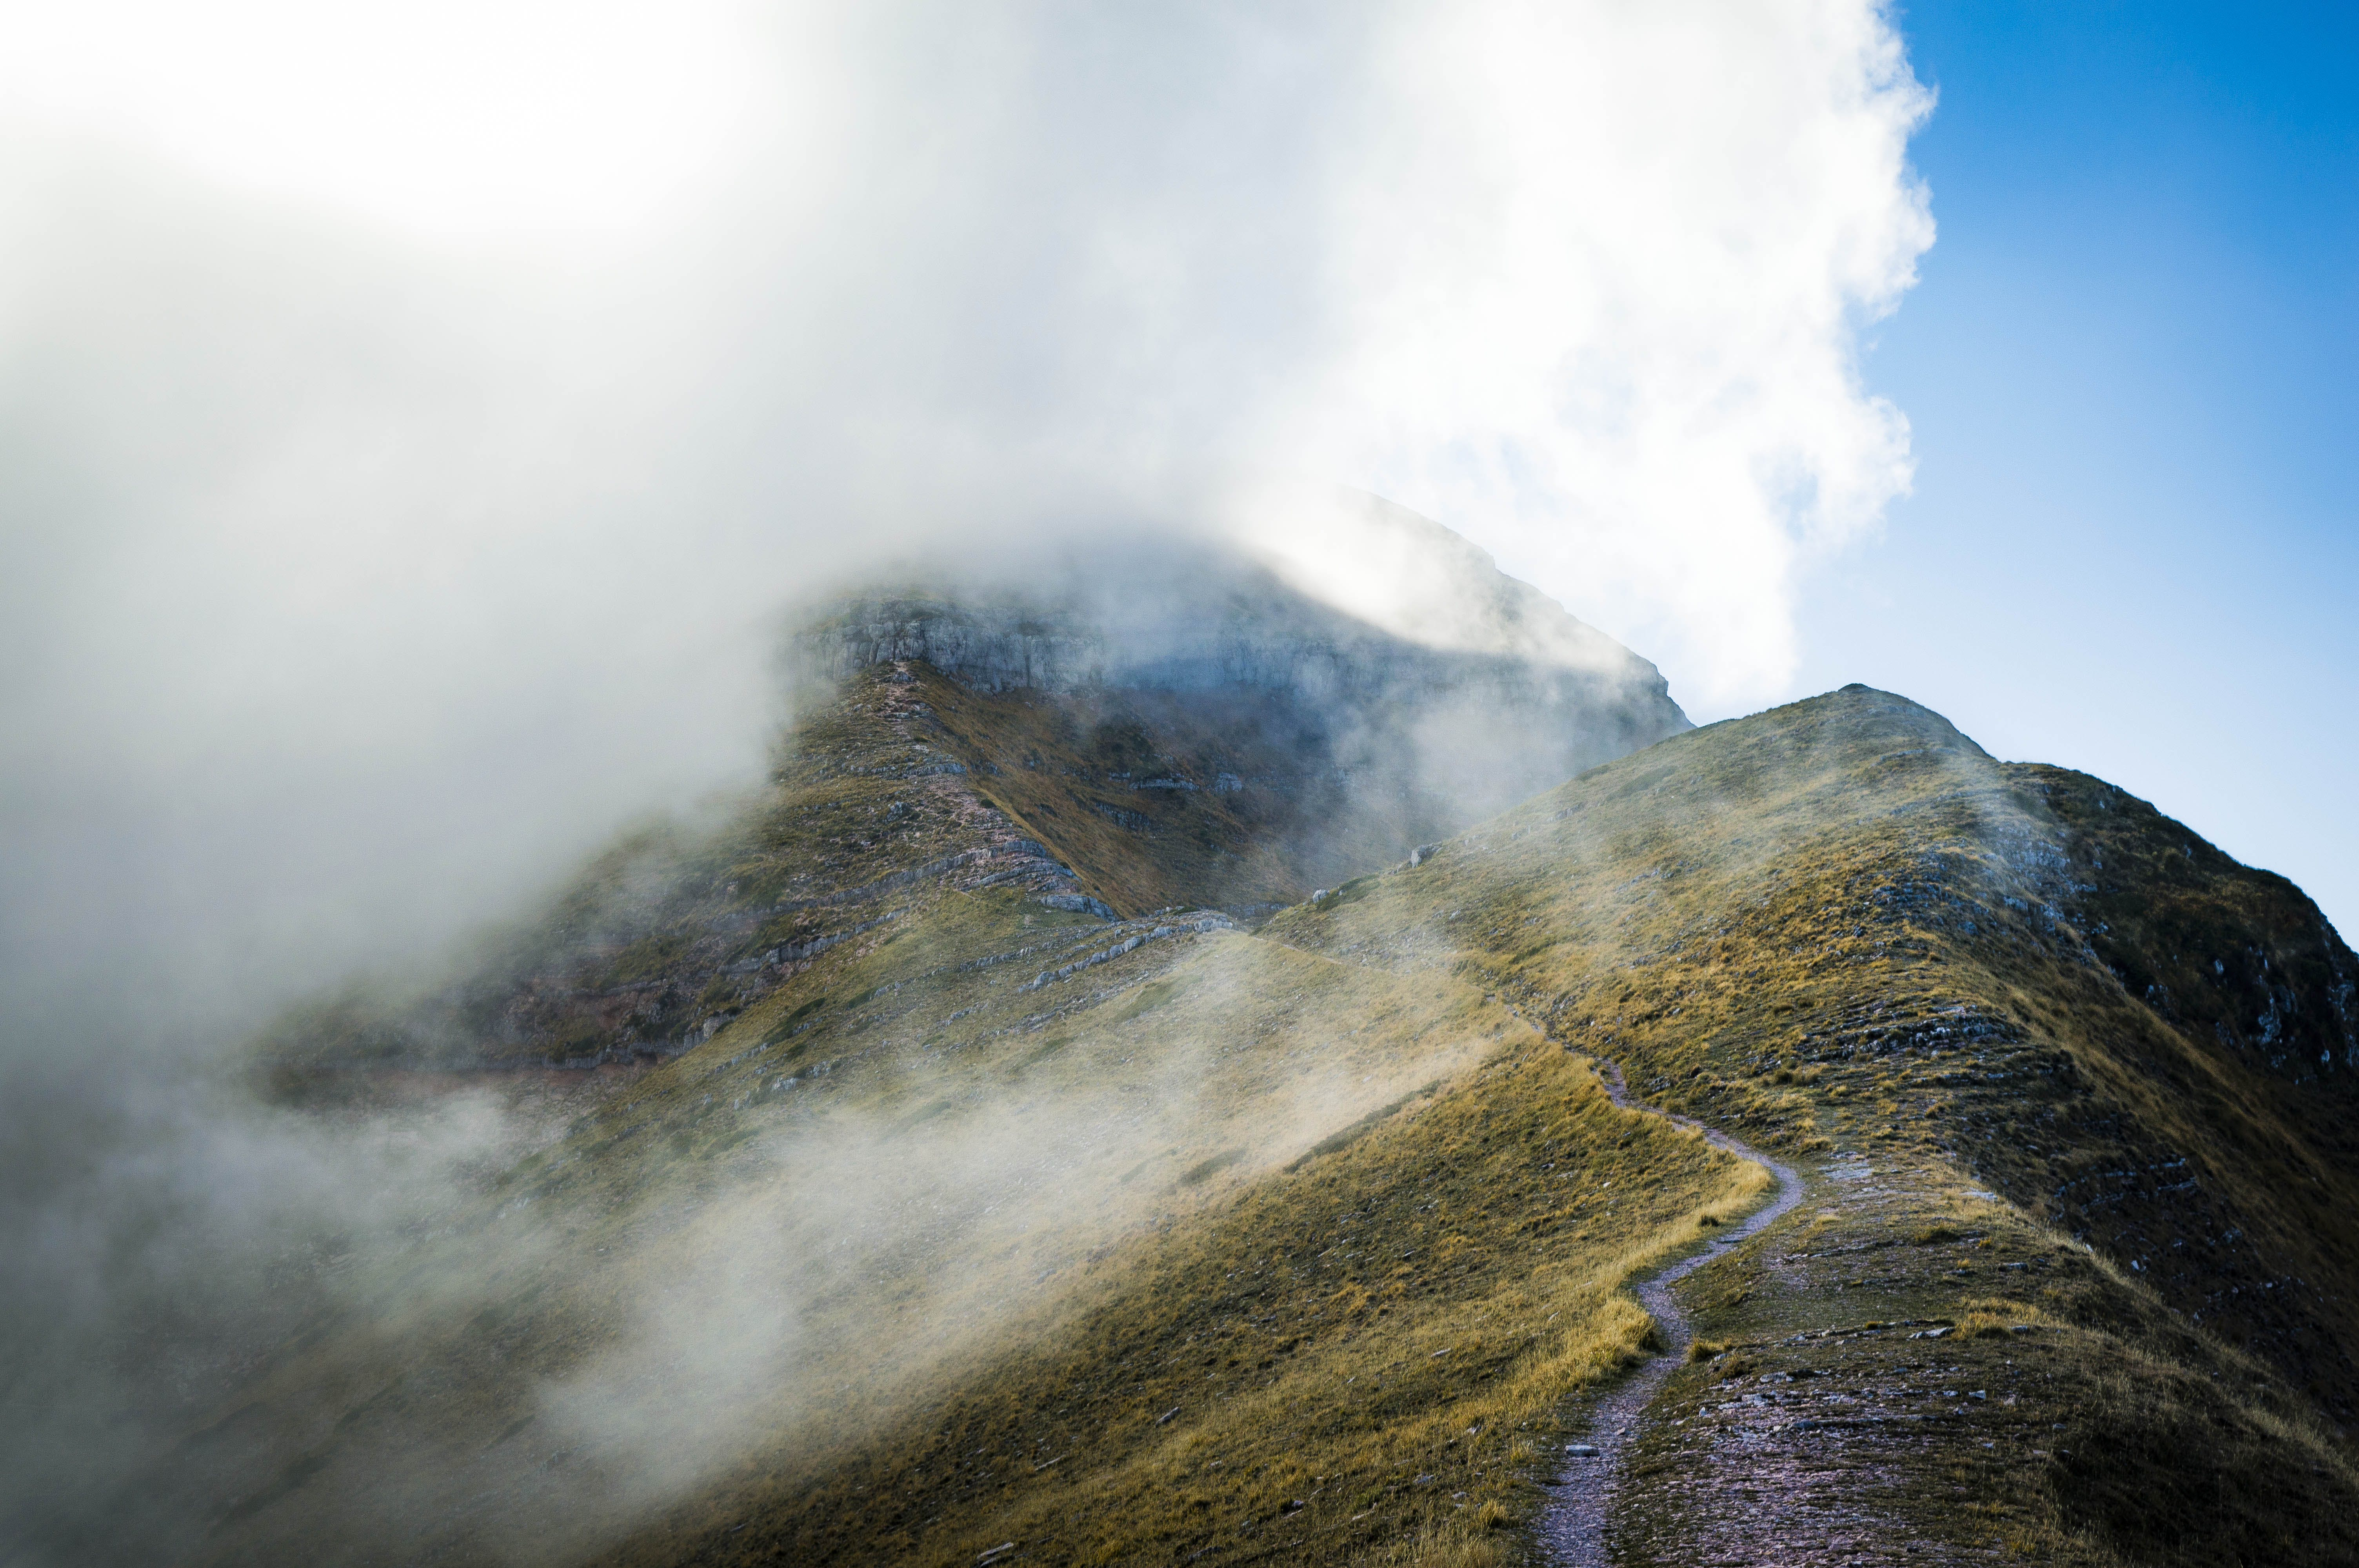 Cloud Covered Mountain Top on Landscape Photography